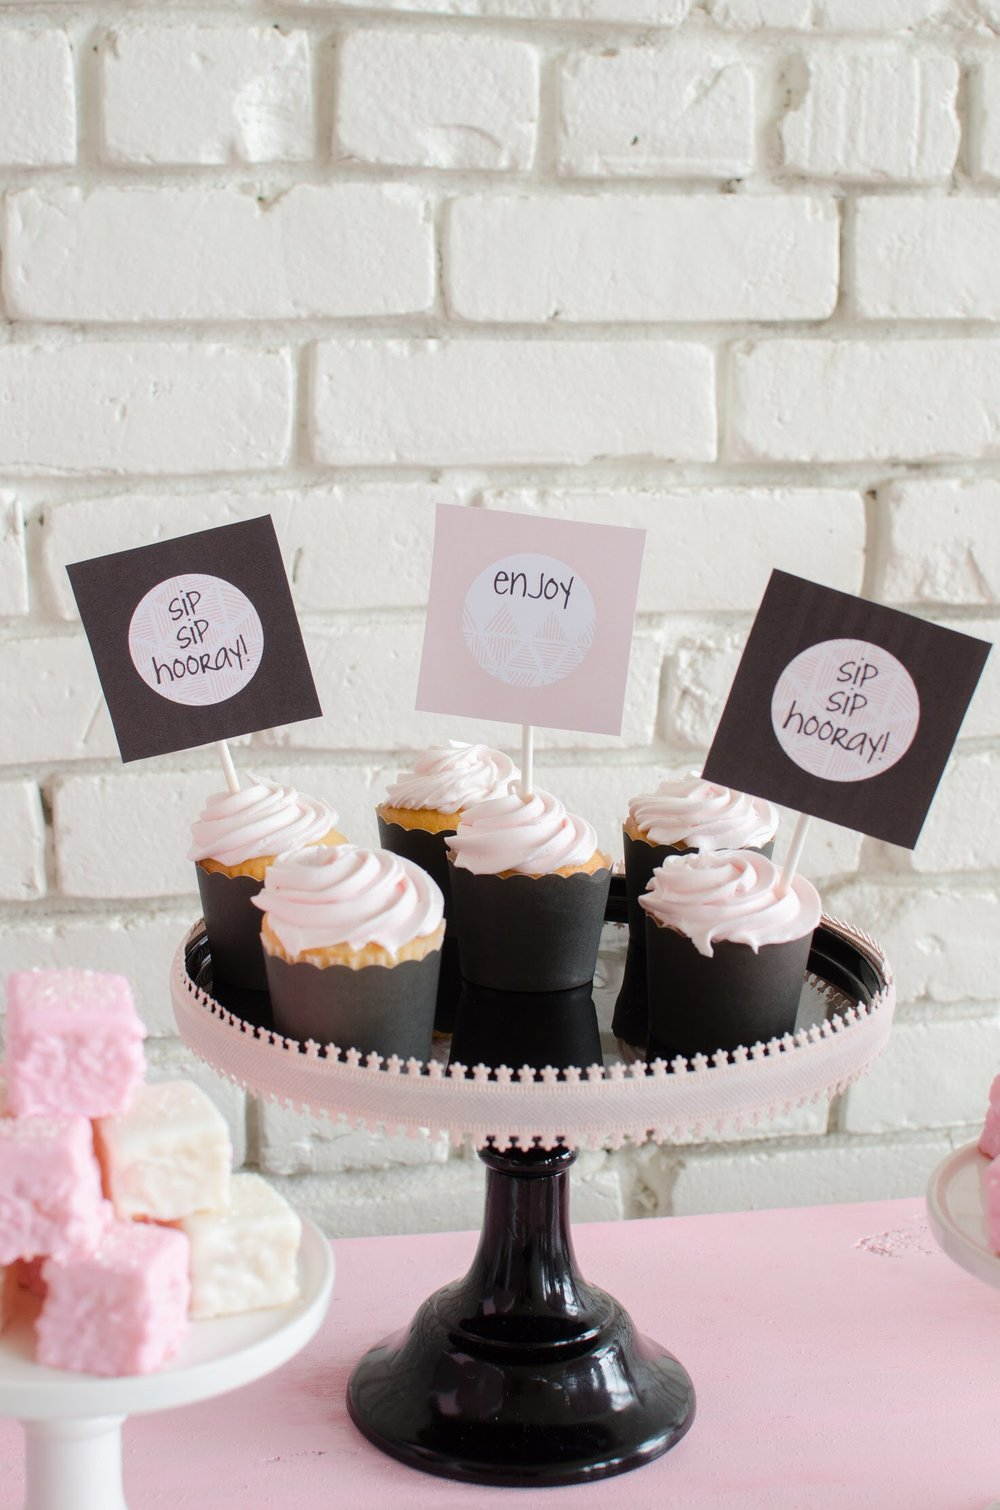 Super cute cupcake toppers! #FreePrintables